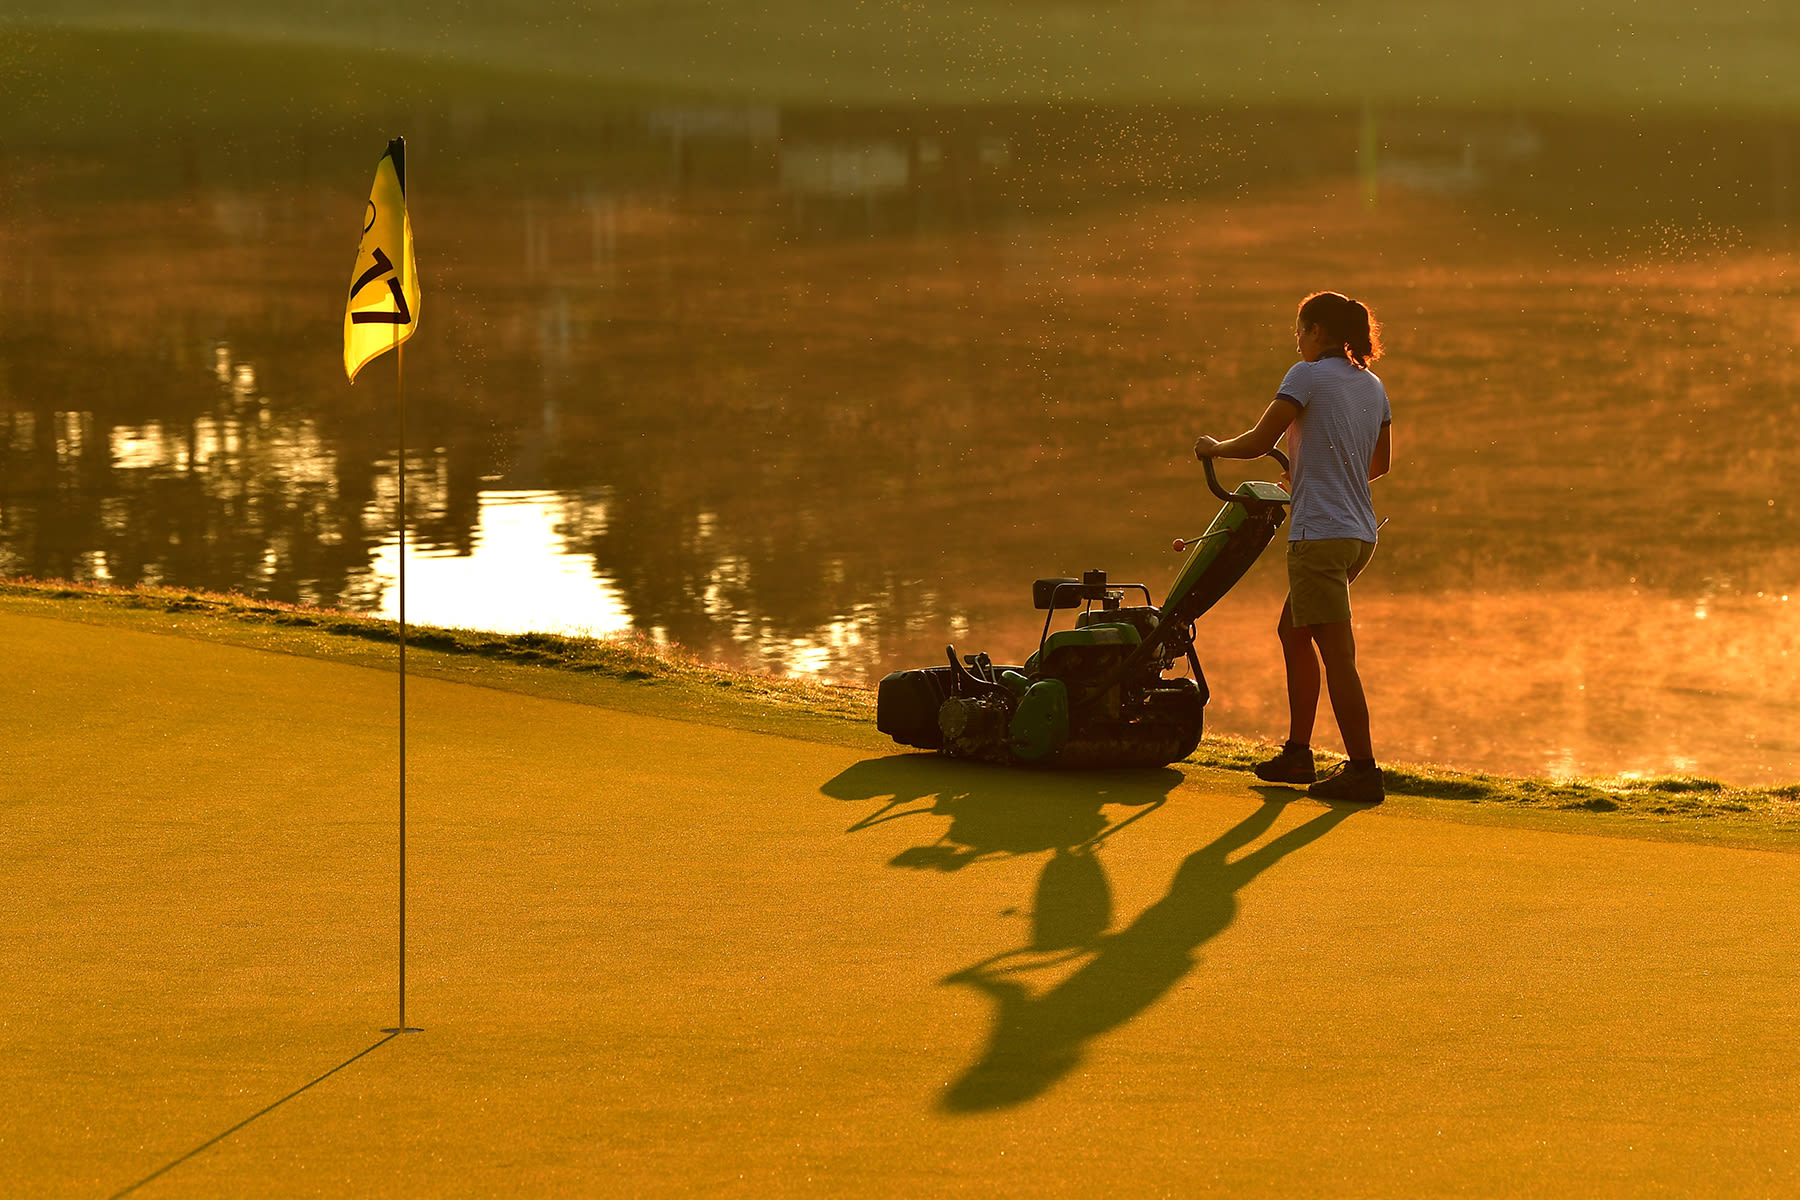 A grounds crew worker prepares the course on the 17th green during the first round of the 2017 PGA Championship at Quail Hollow Club on August 10, 2017 in Charlotte, North Carolina.